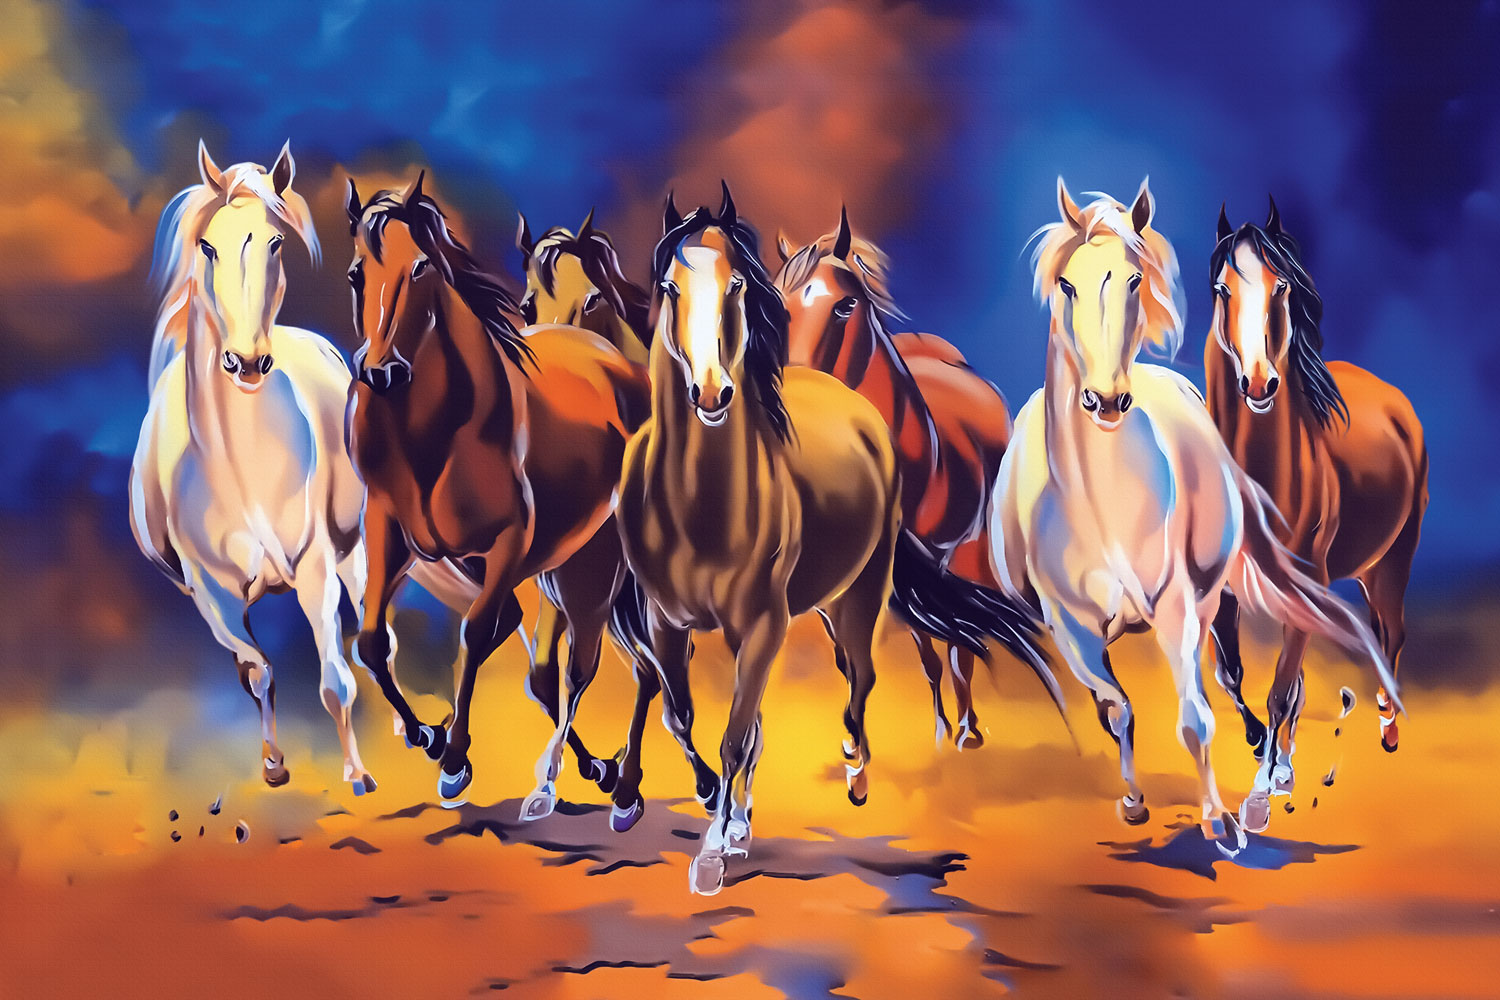 Seven Horse Print A Wallpaper More